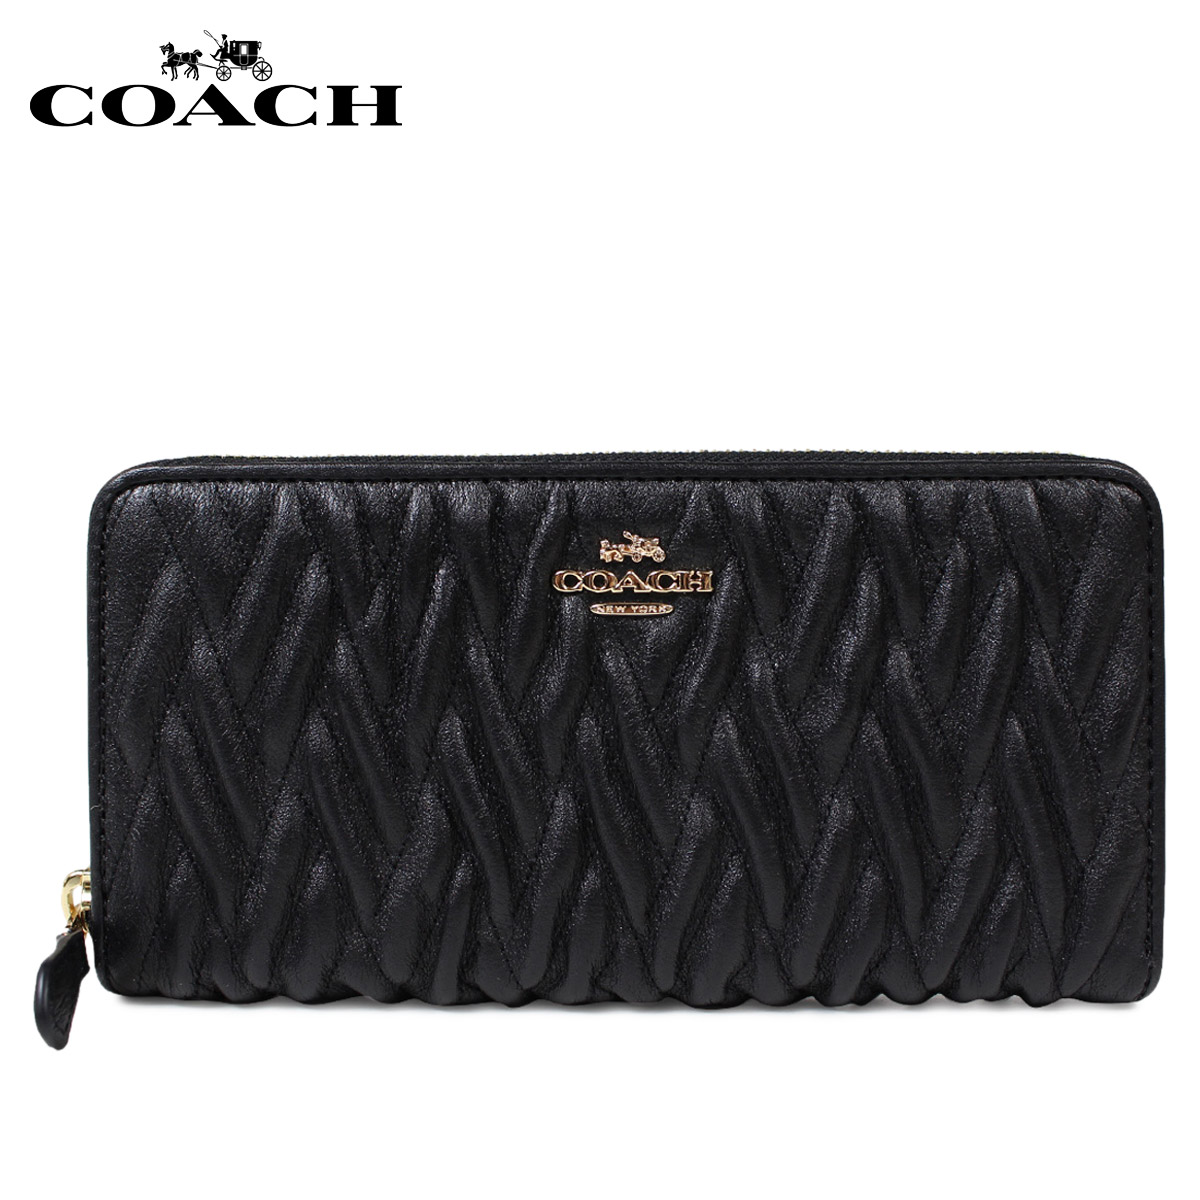 promo code 24c0c 7adfd [SOLD OUT] coach wallet COACH long wallet Lady's round fastener F54003 black